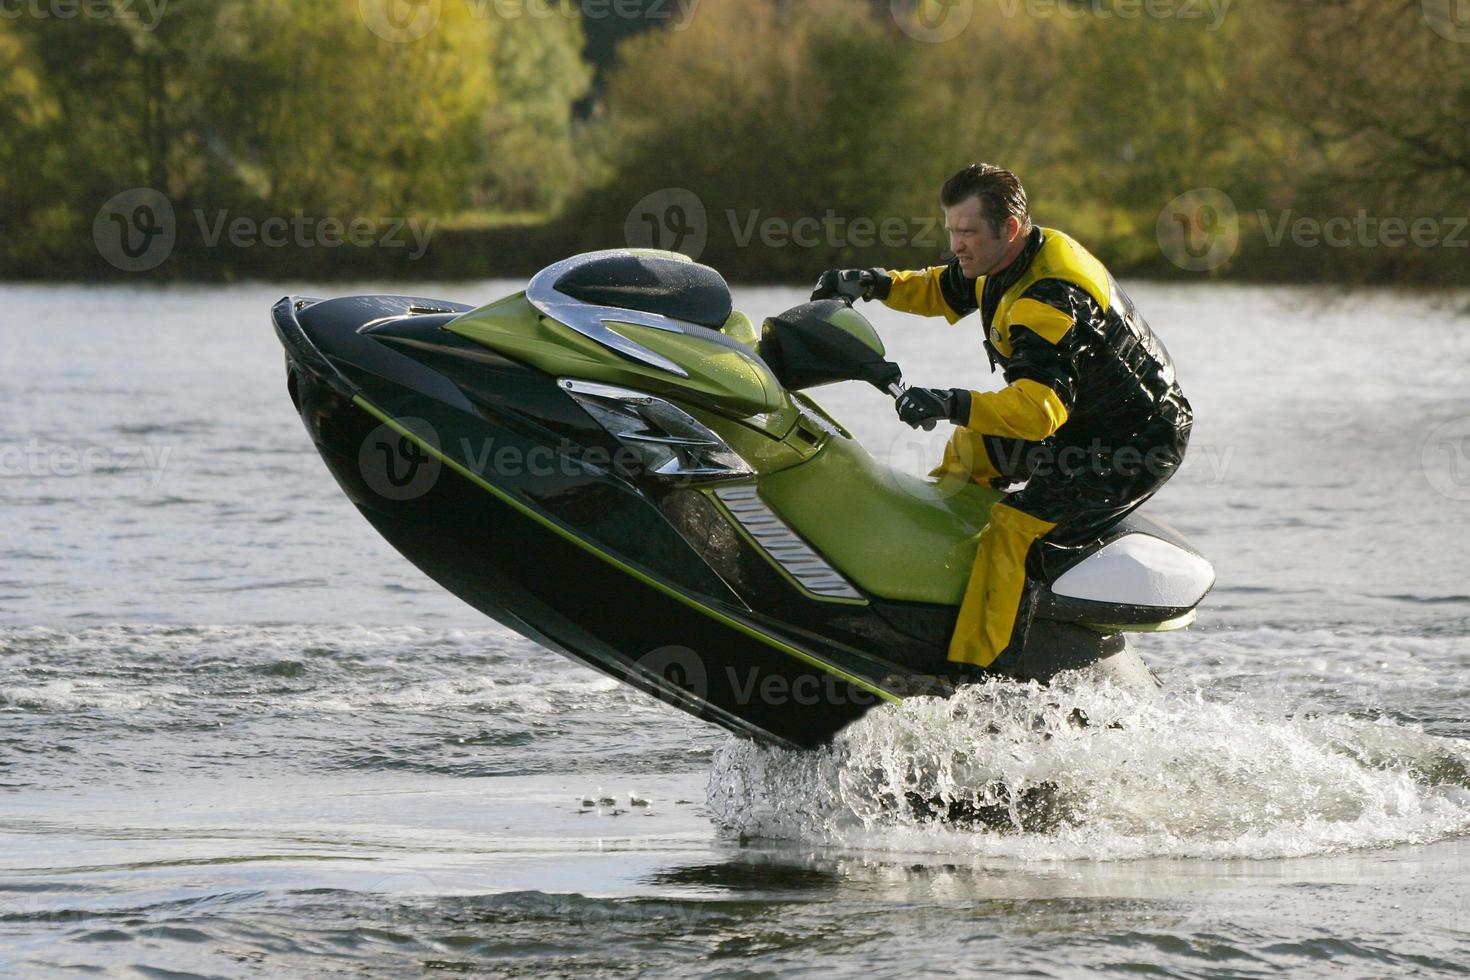 Jet Ski Wet Bike Leaping Out Of The Water photo